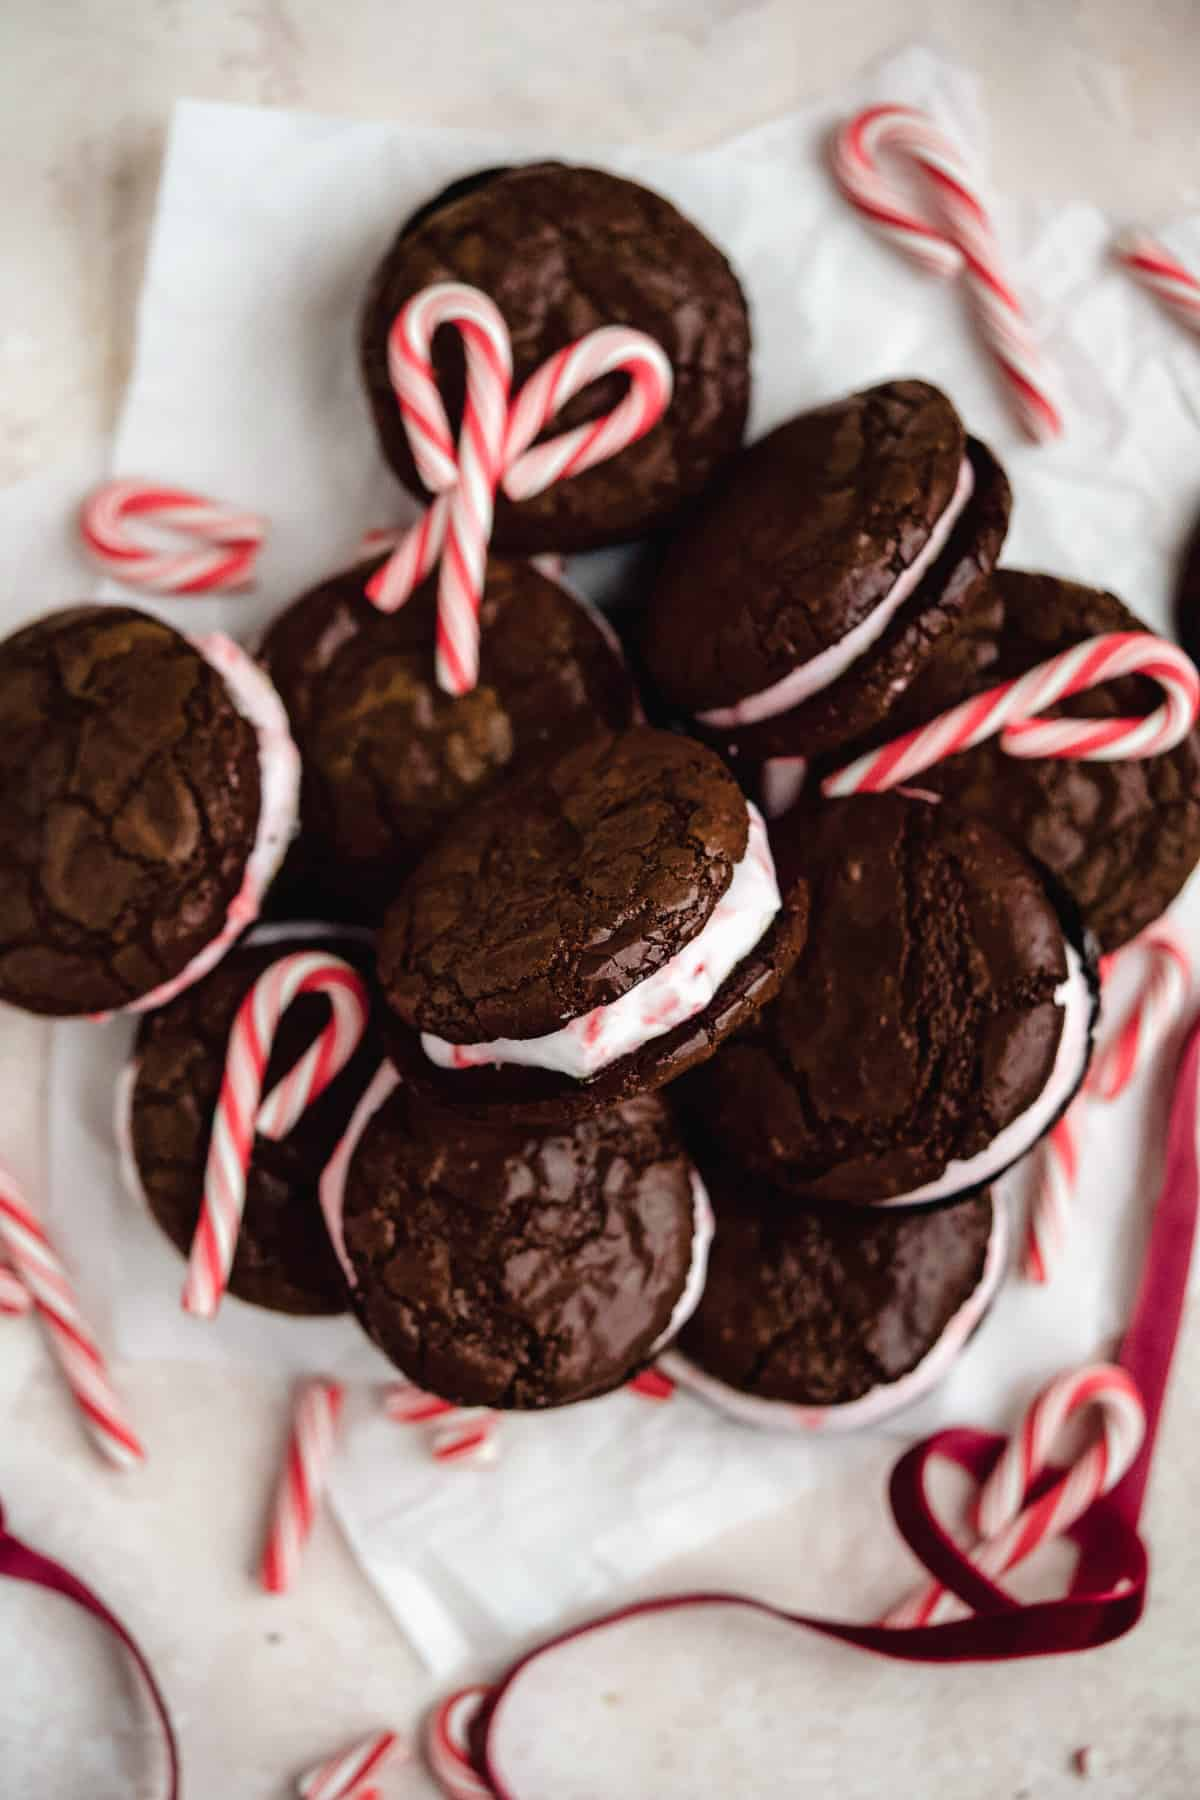 Overhead view of Peppermint Brownie Sandwich Cookies mounded on white parchment paper.  Peppermint candy canes are sprinkled around.